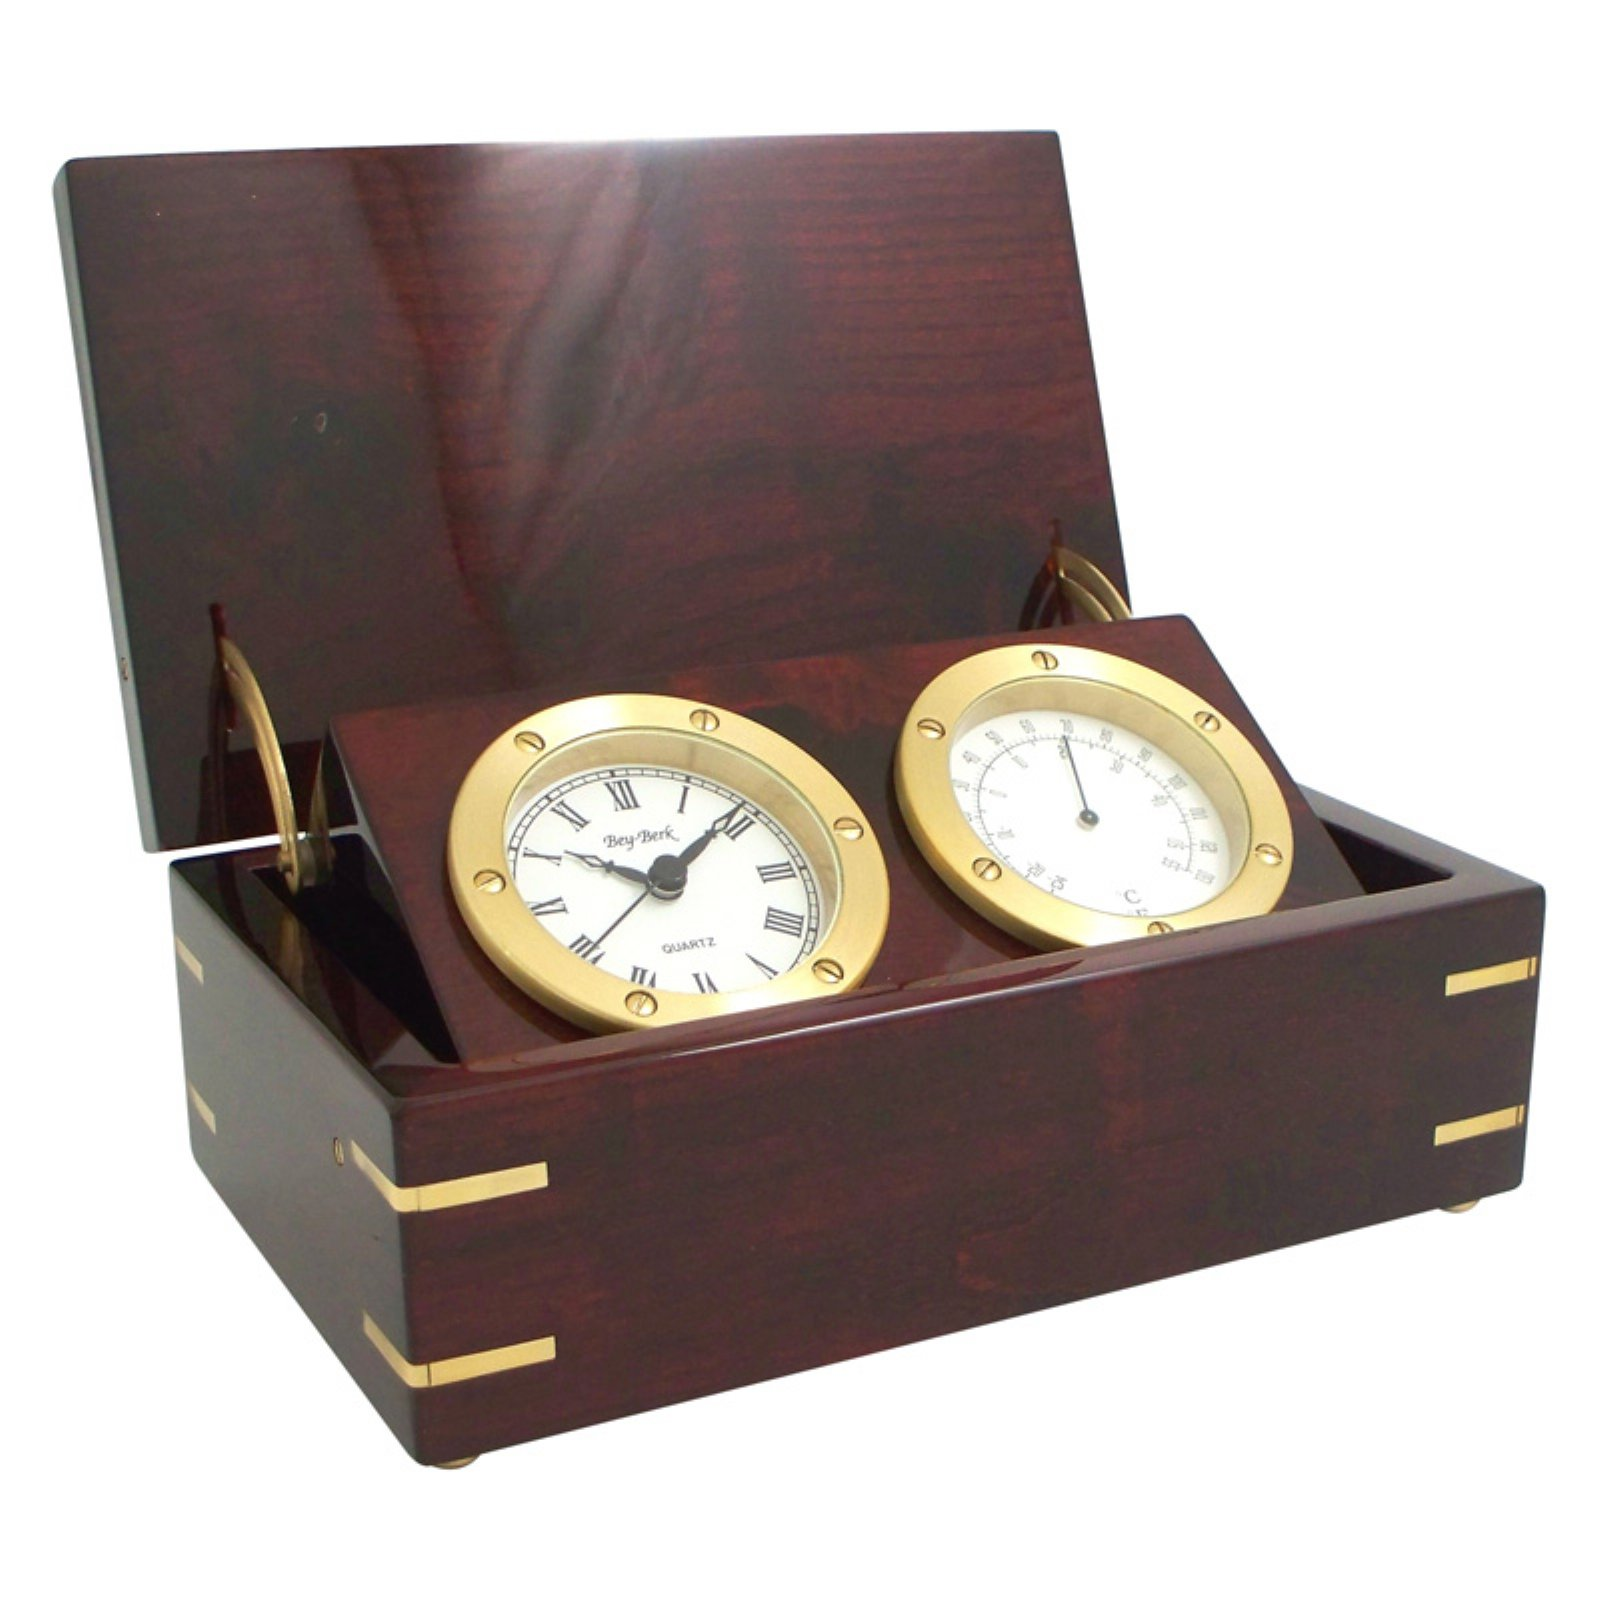 Bey Berk Rosewood Desk Clock with Thermometer